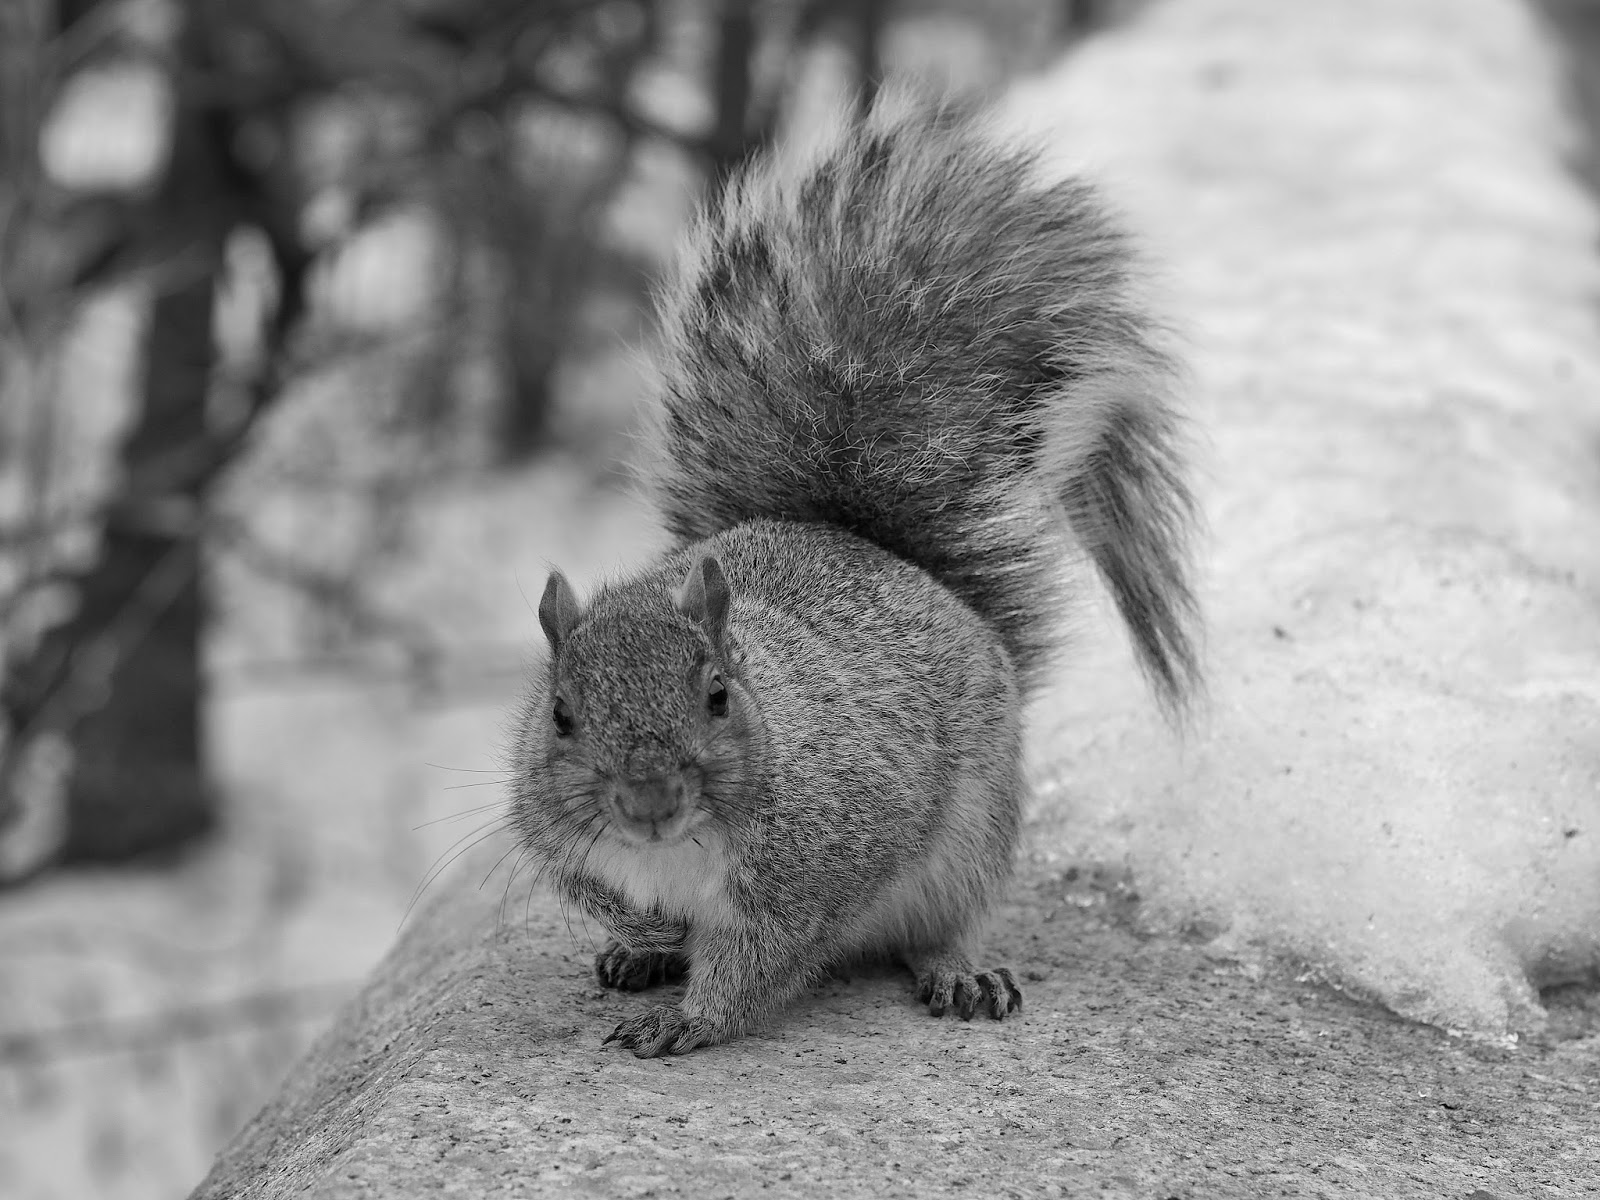 I Work for Nuts #squirrel #Squirrels #wildlife #NYC #RiversidePark ©2015 Nancy Lundebjerg